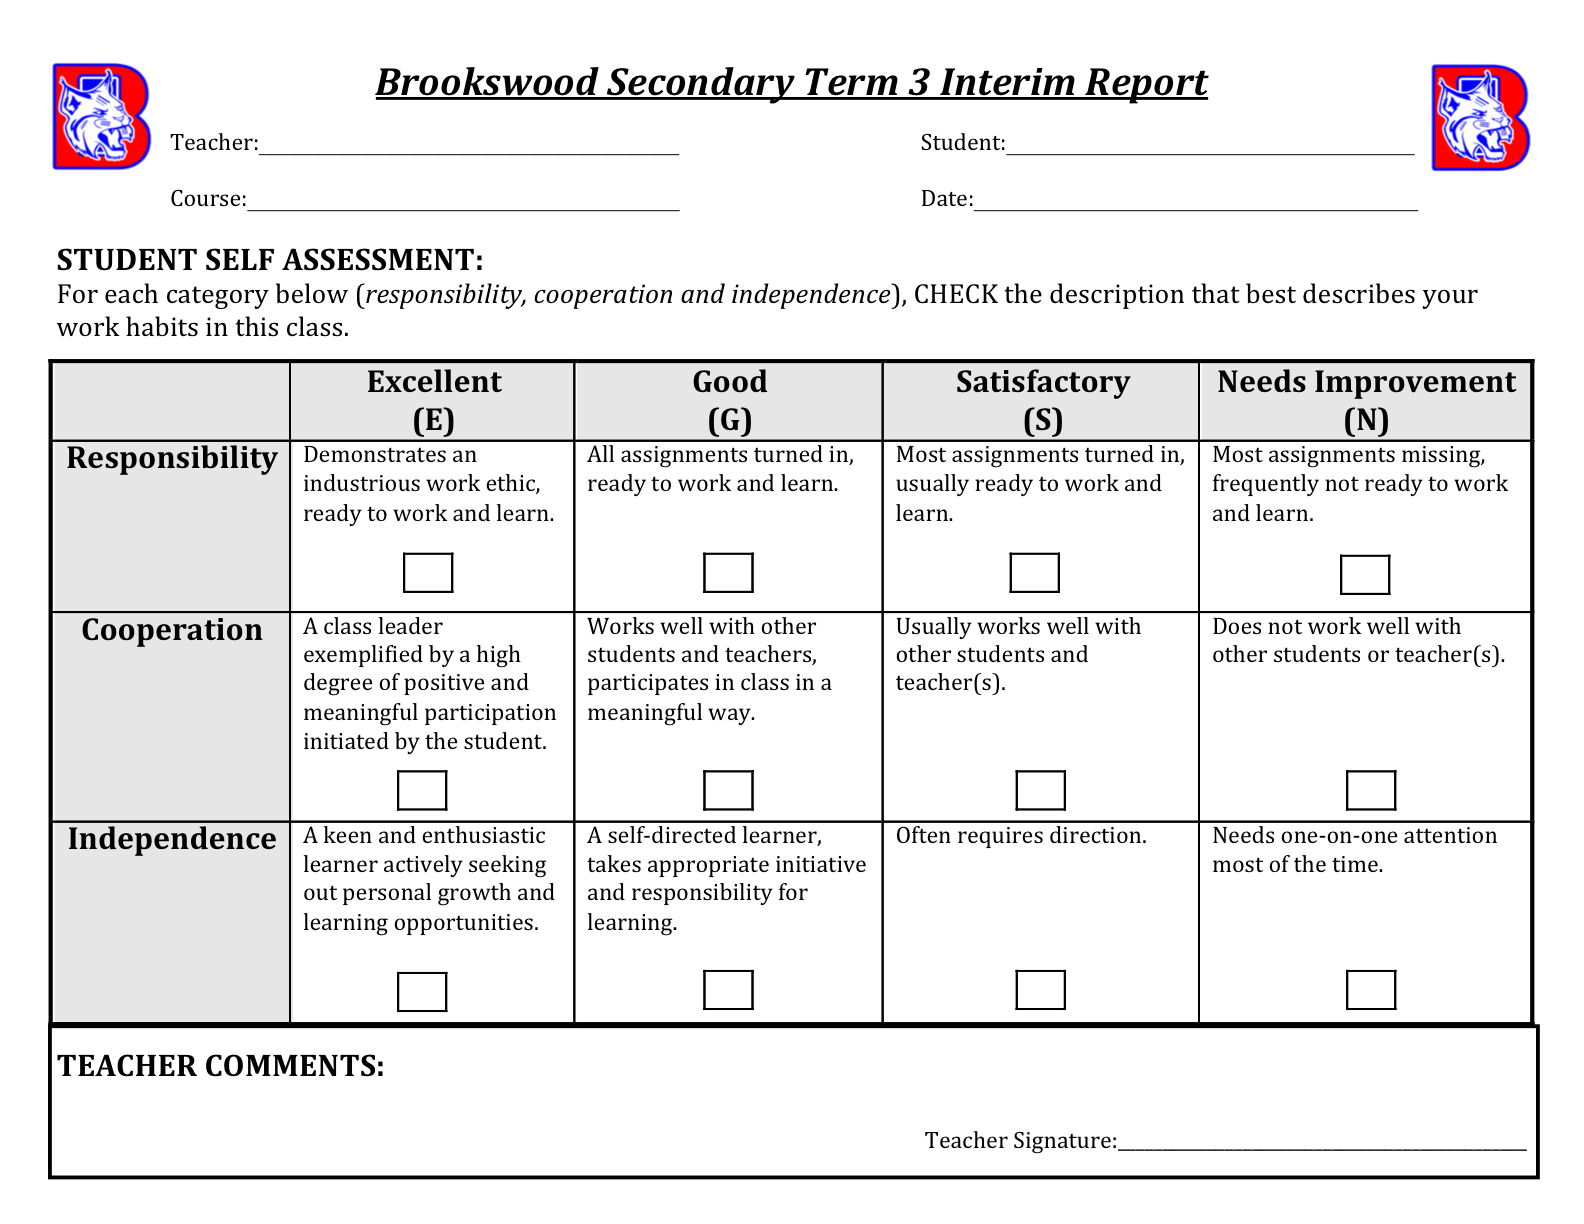 This Past Thursday, Teachers Began Sending Home Interim Reports To Students  In Every Class. The Final Interim Report Consists Of A Student Self- Assessment